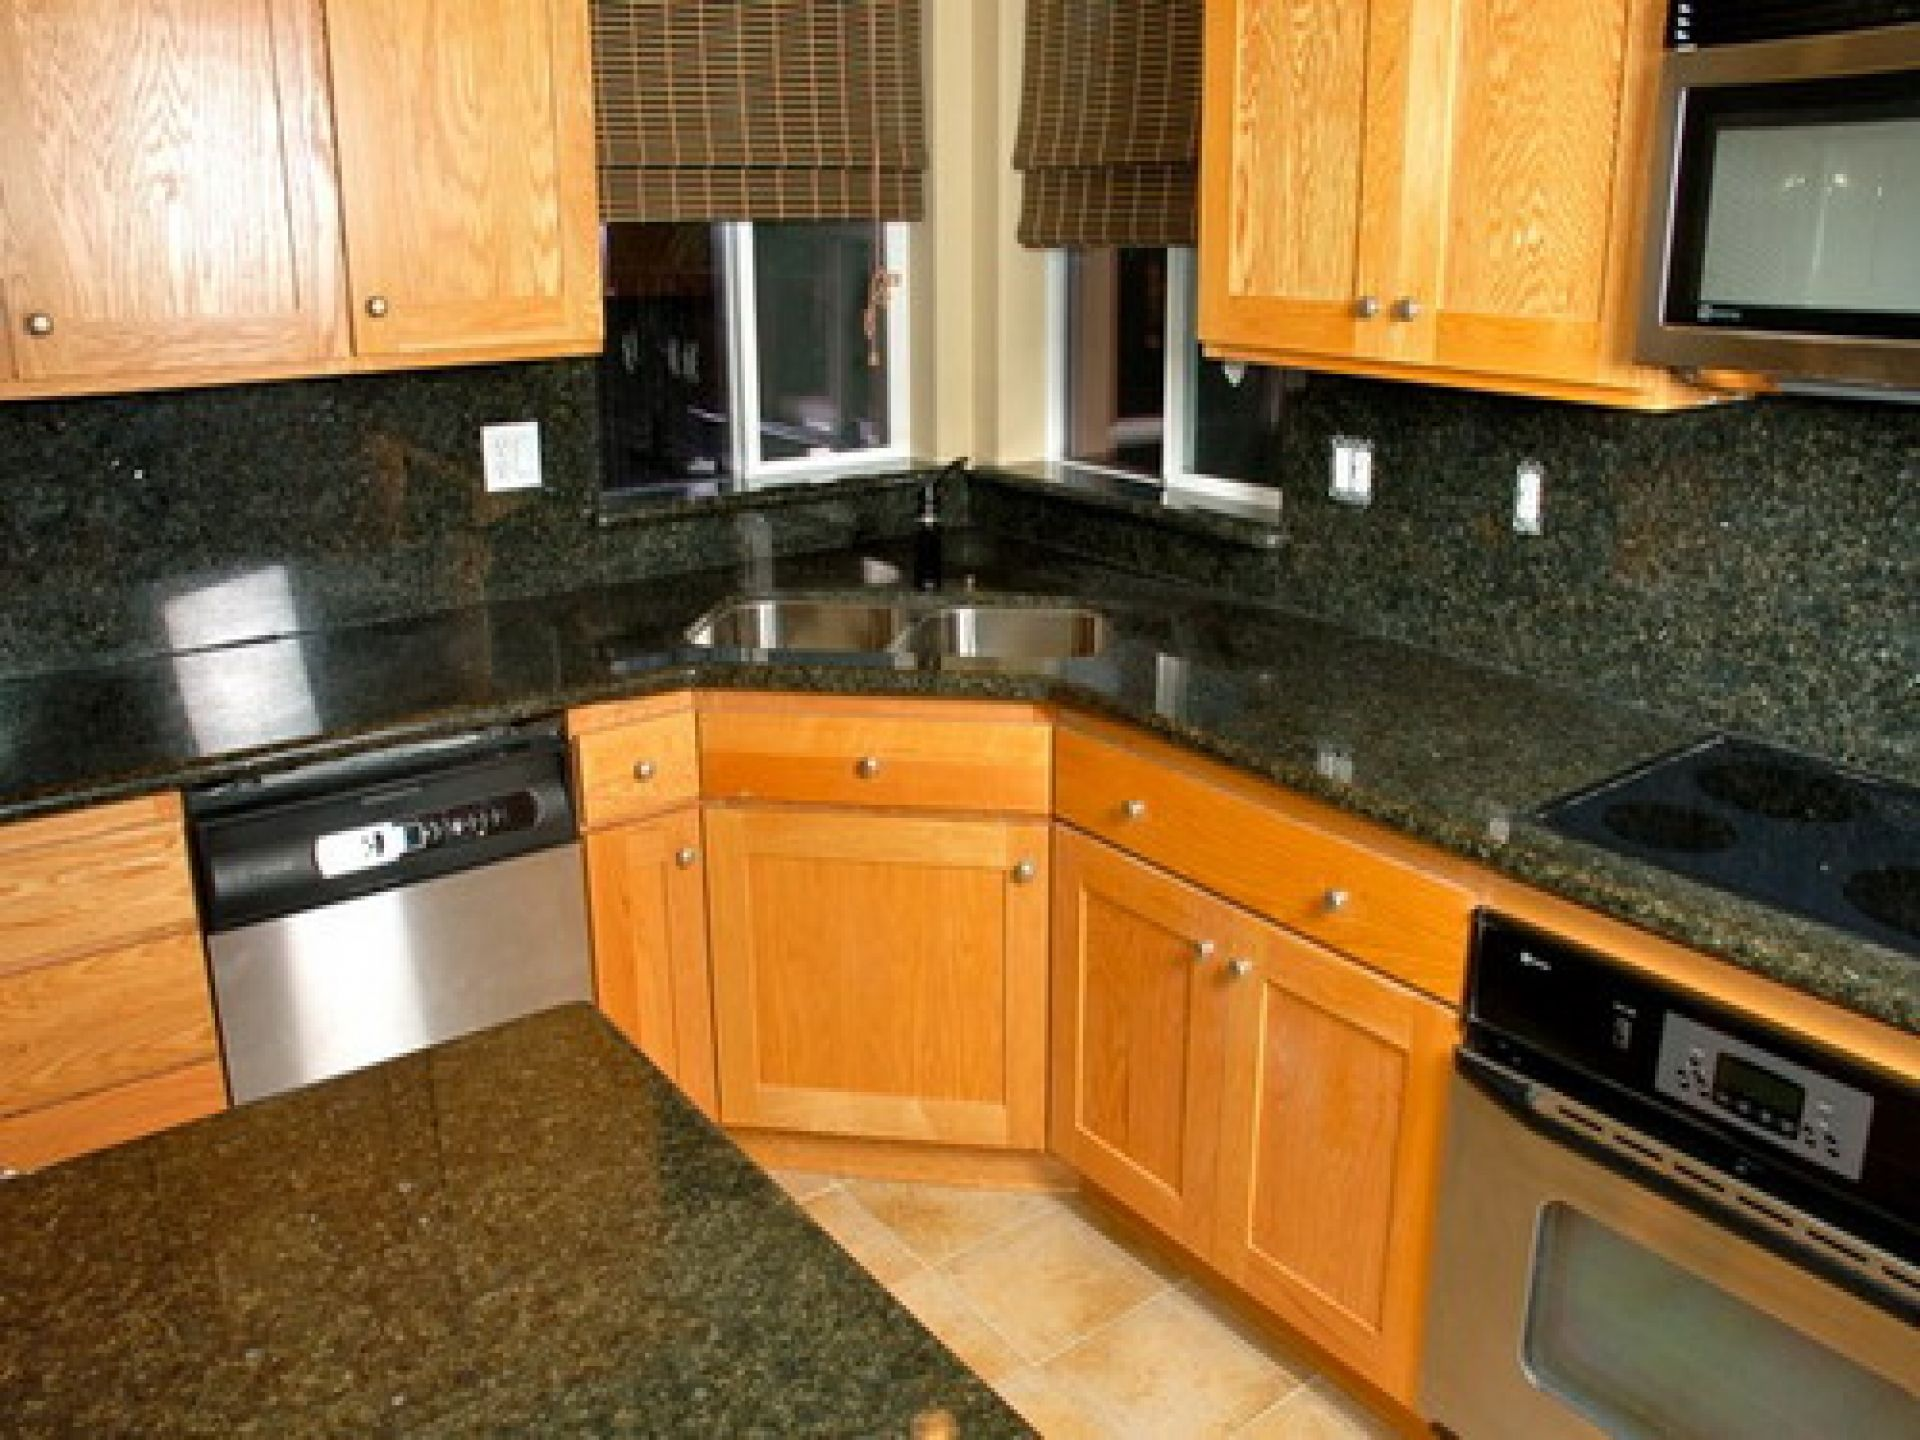 kitchen sink kitchen cabinets Fashionable Corner Kitchen Sink With Unstained Oak Kitchen Cabinet With Dark Granite Countertop As Well As Grey Wall Tiles Backsplash And Chrome Modern